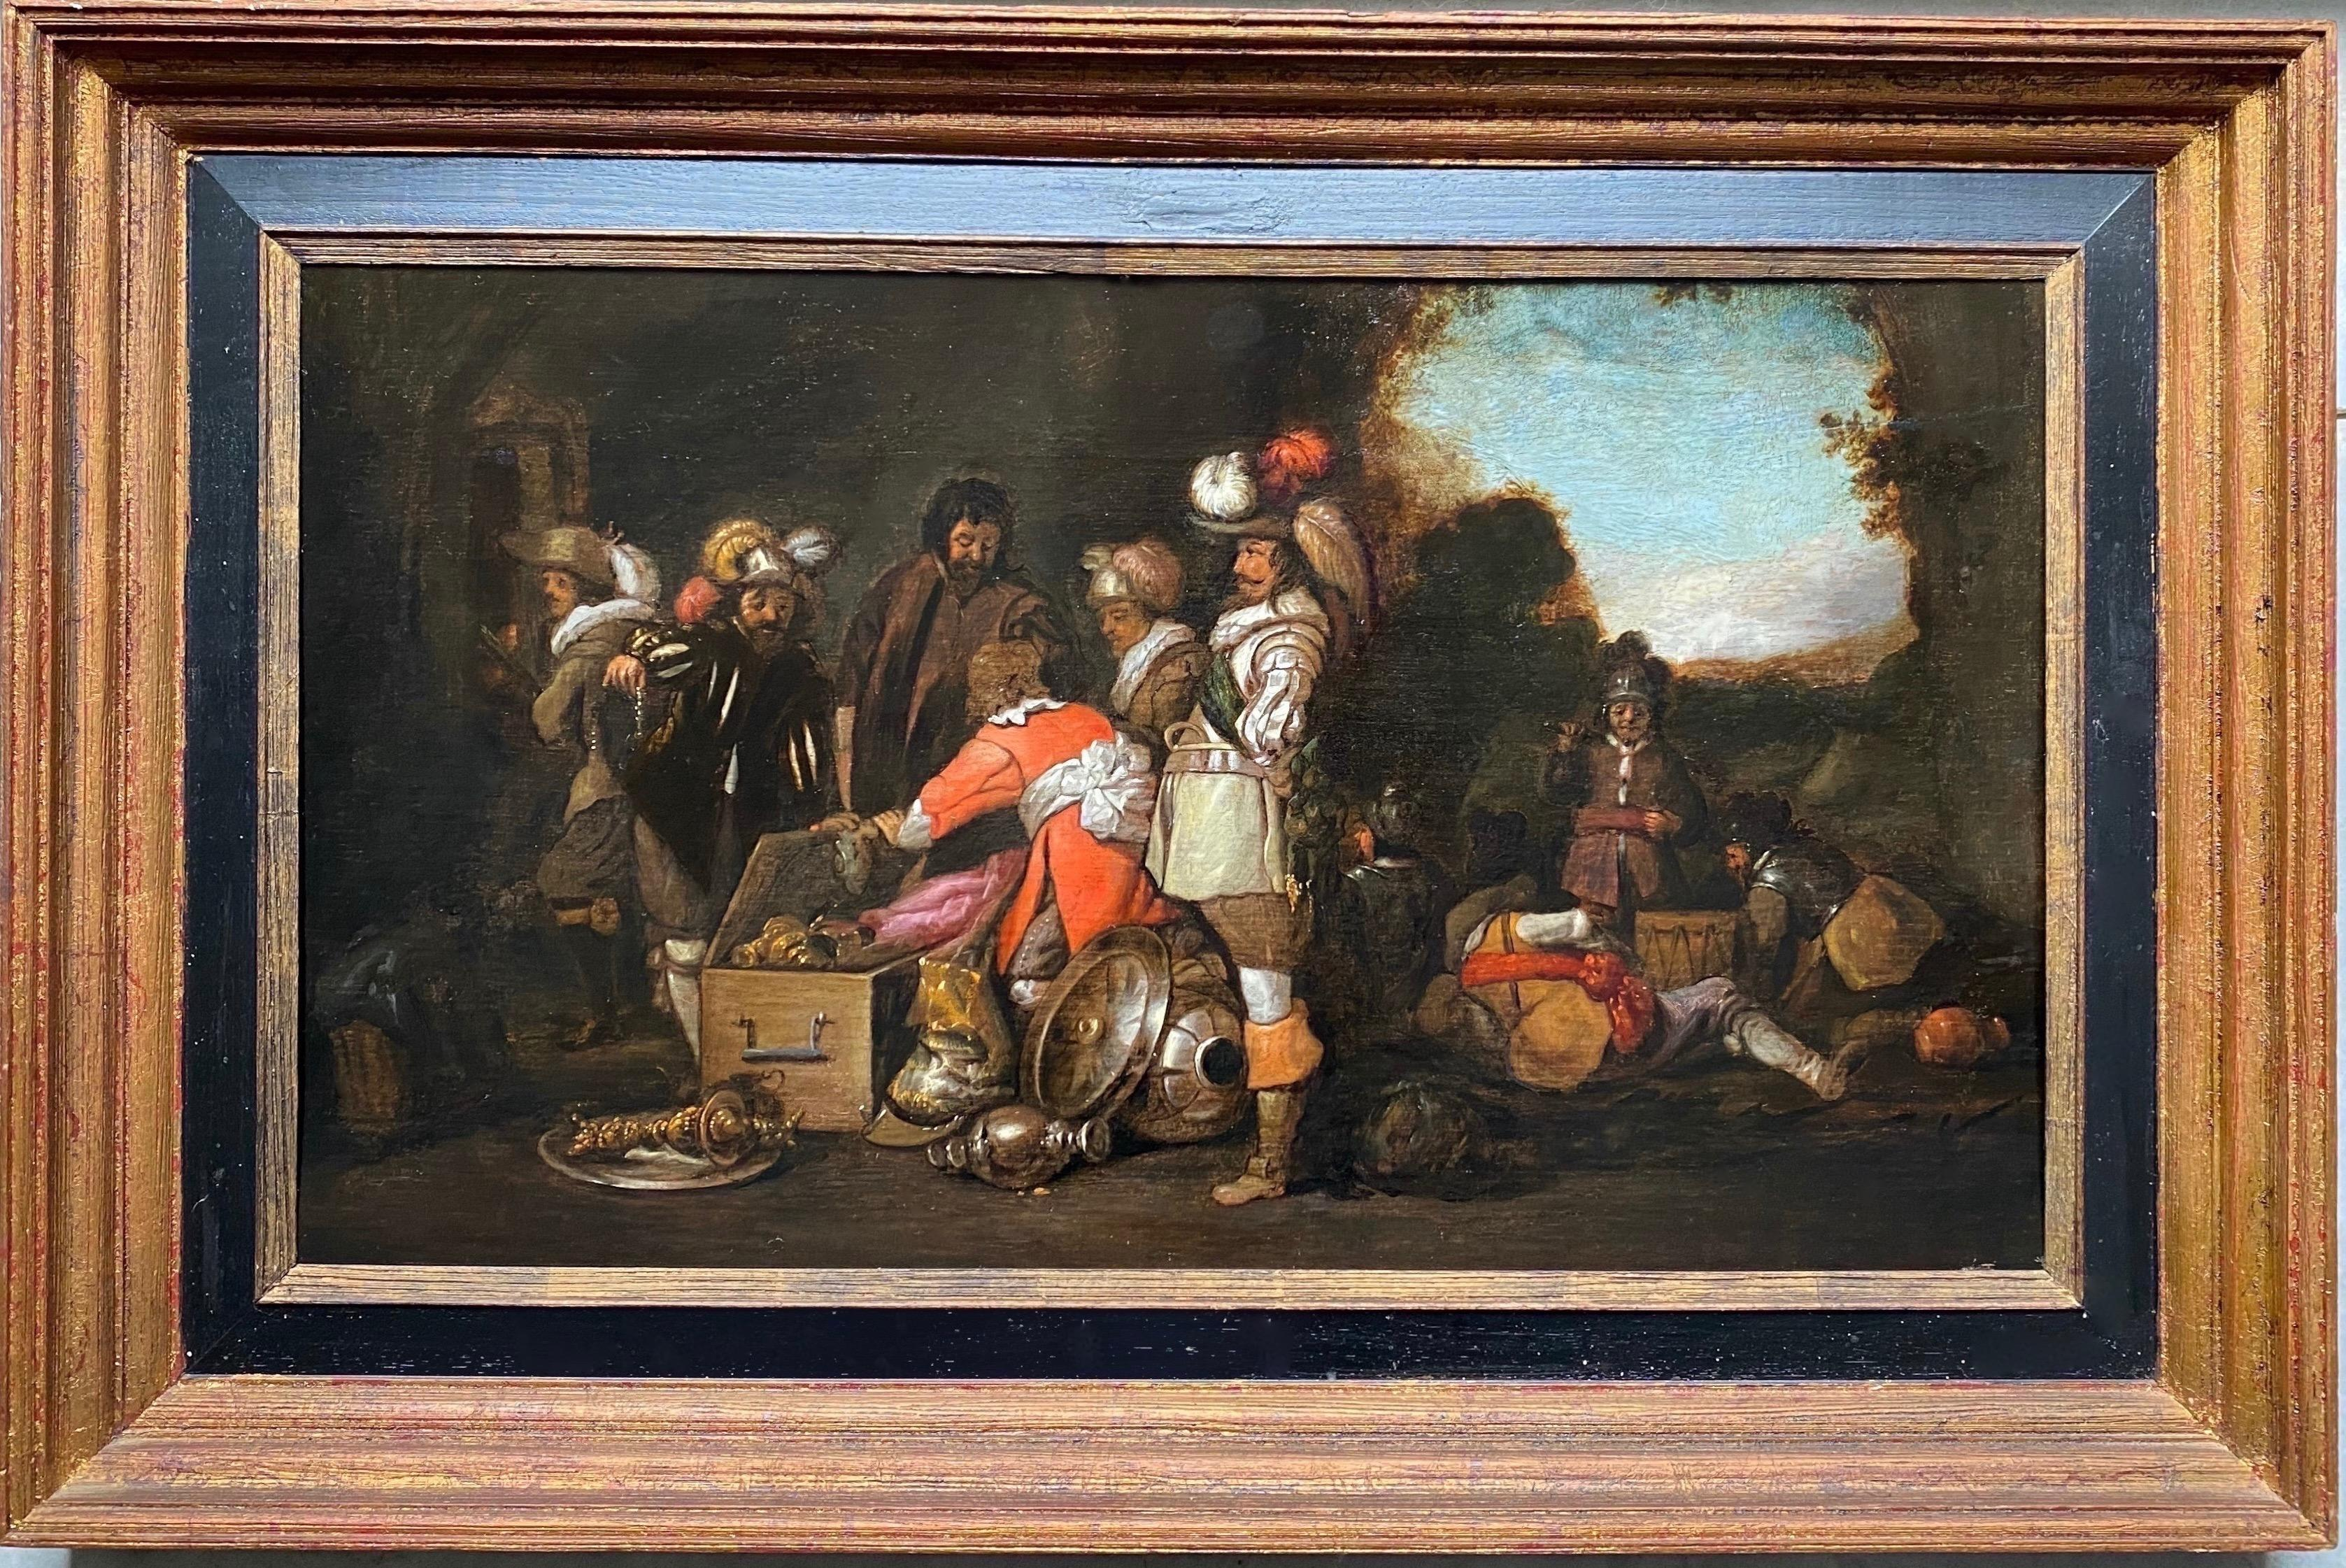 17th century Dutch Old Master painting - A treasure-filled guardroom - genre